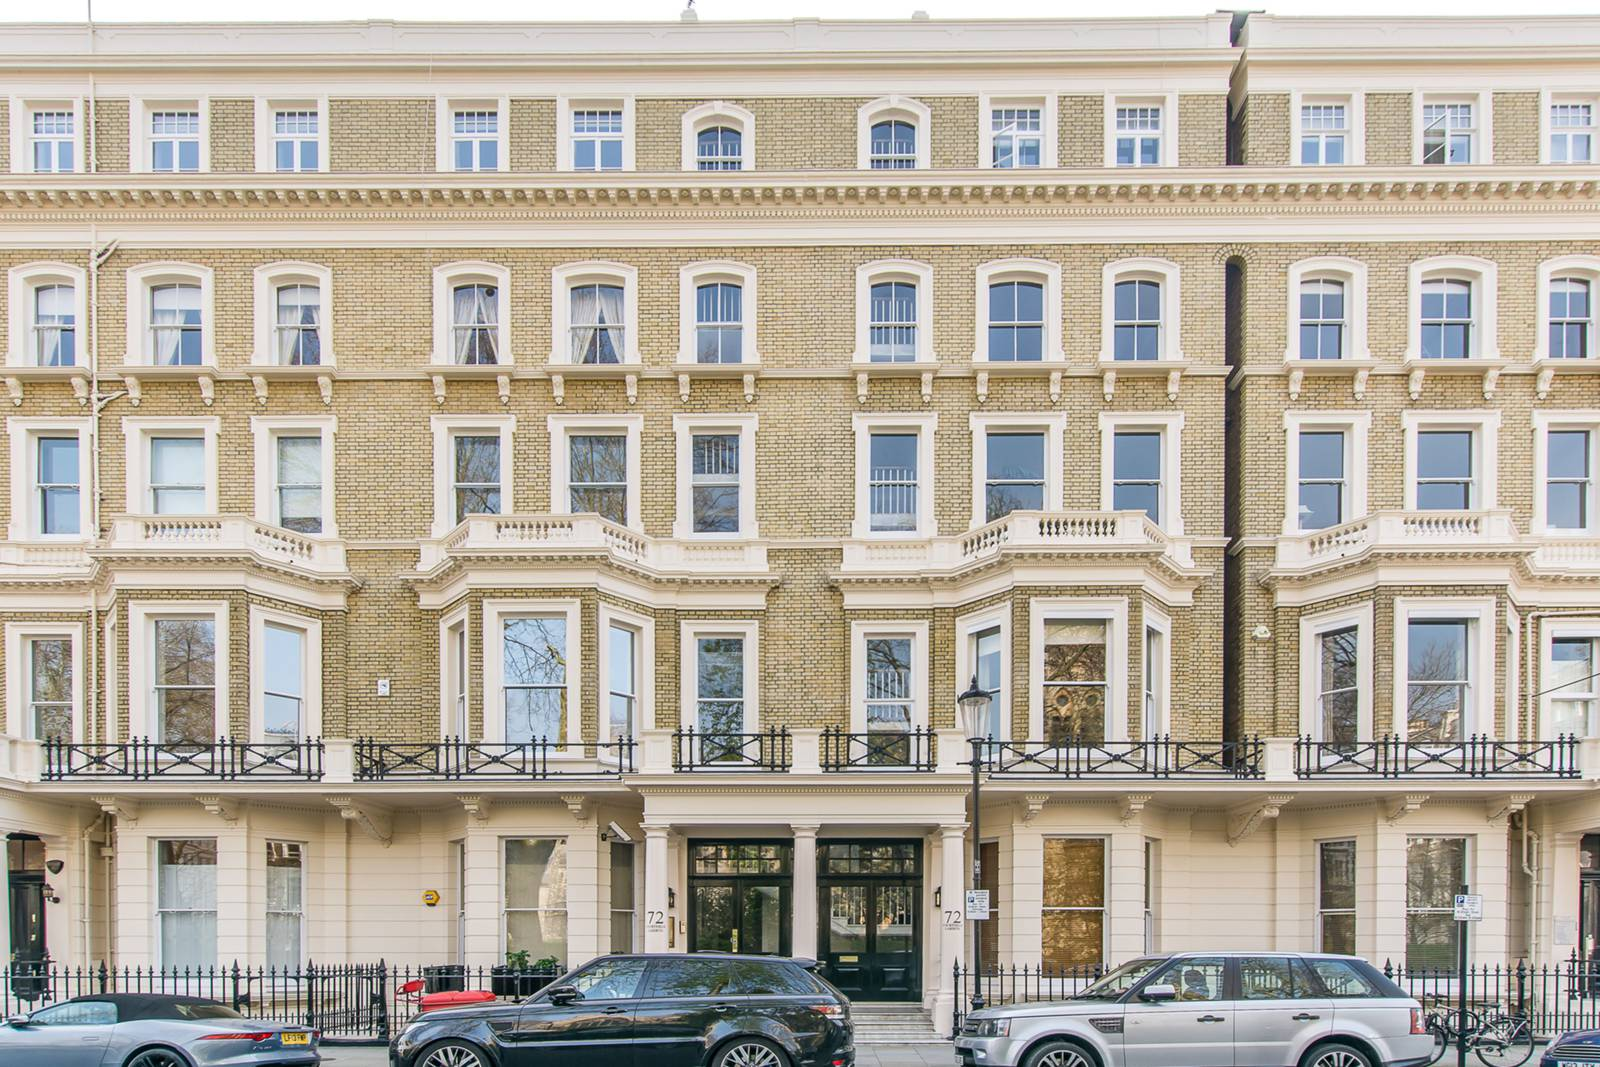 2 Bedroom Garden Flat London 2 Bedroom Flat For Sale In Courtfield Gardens South